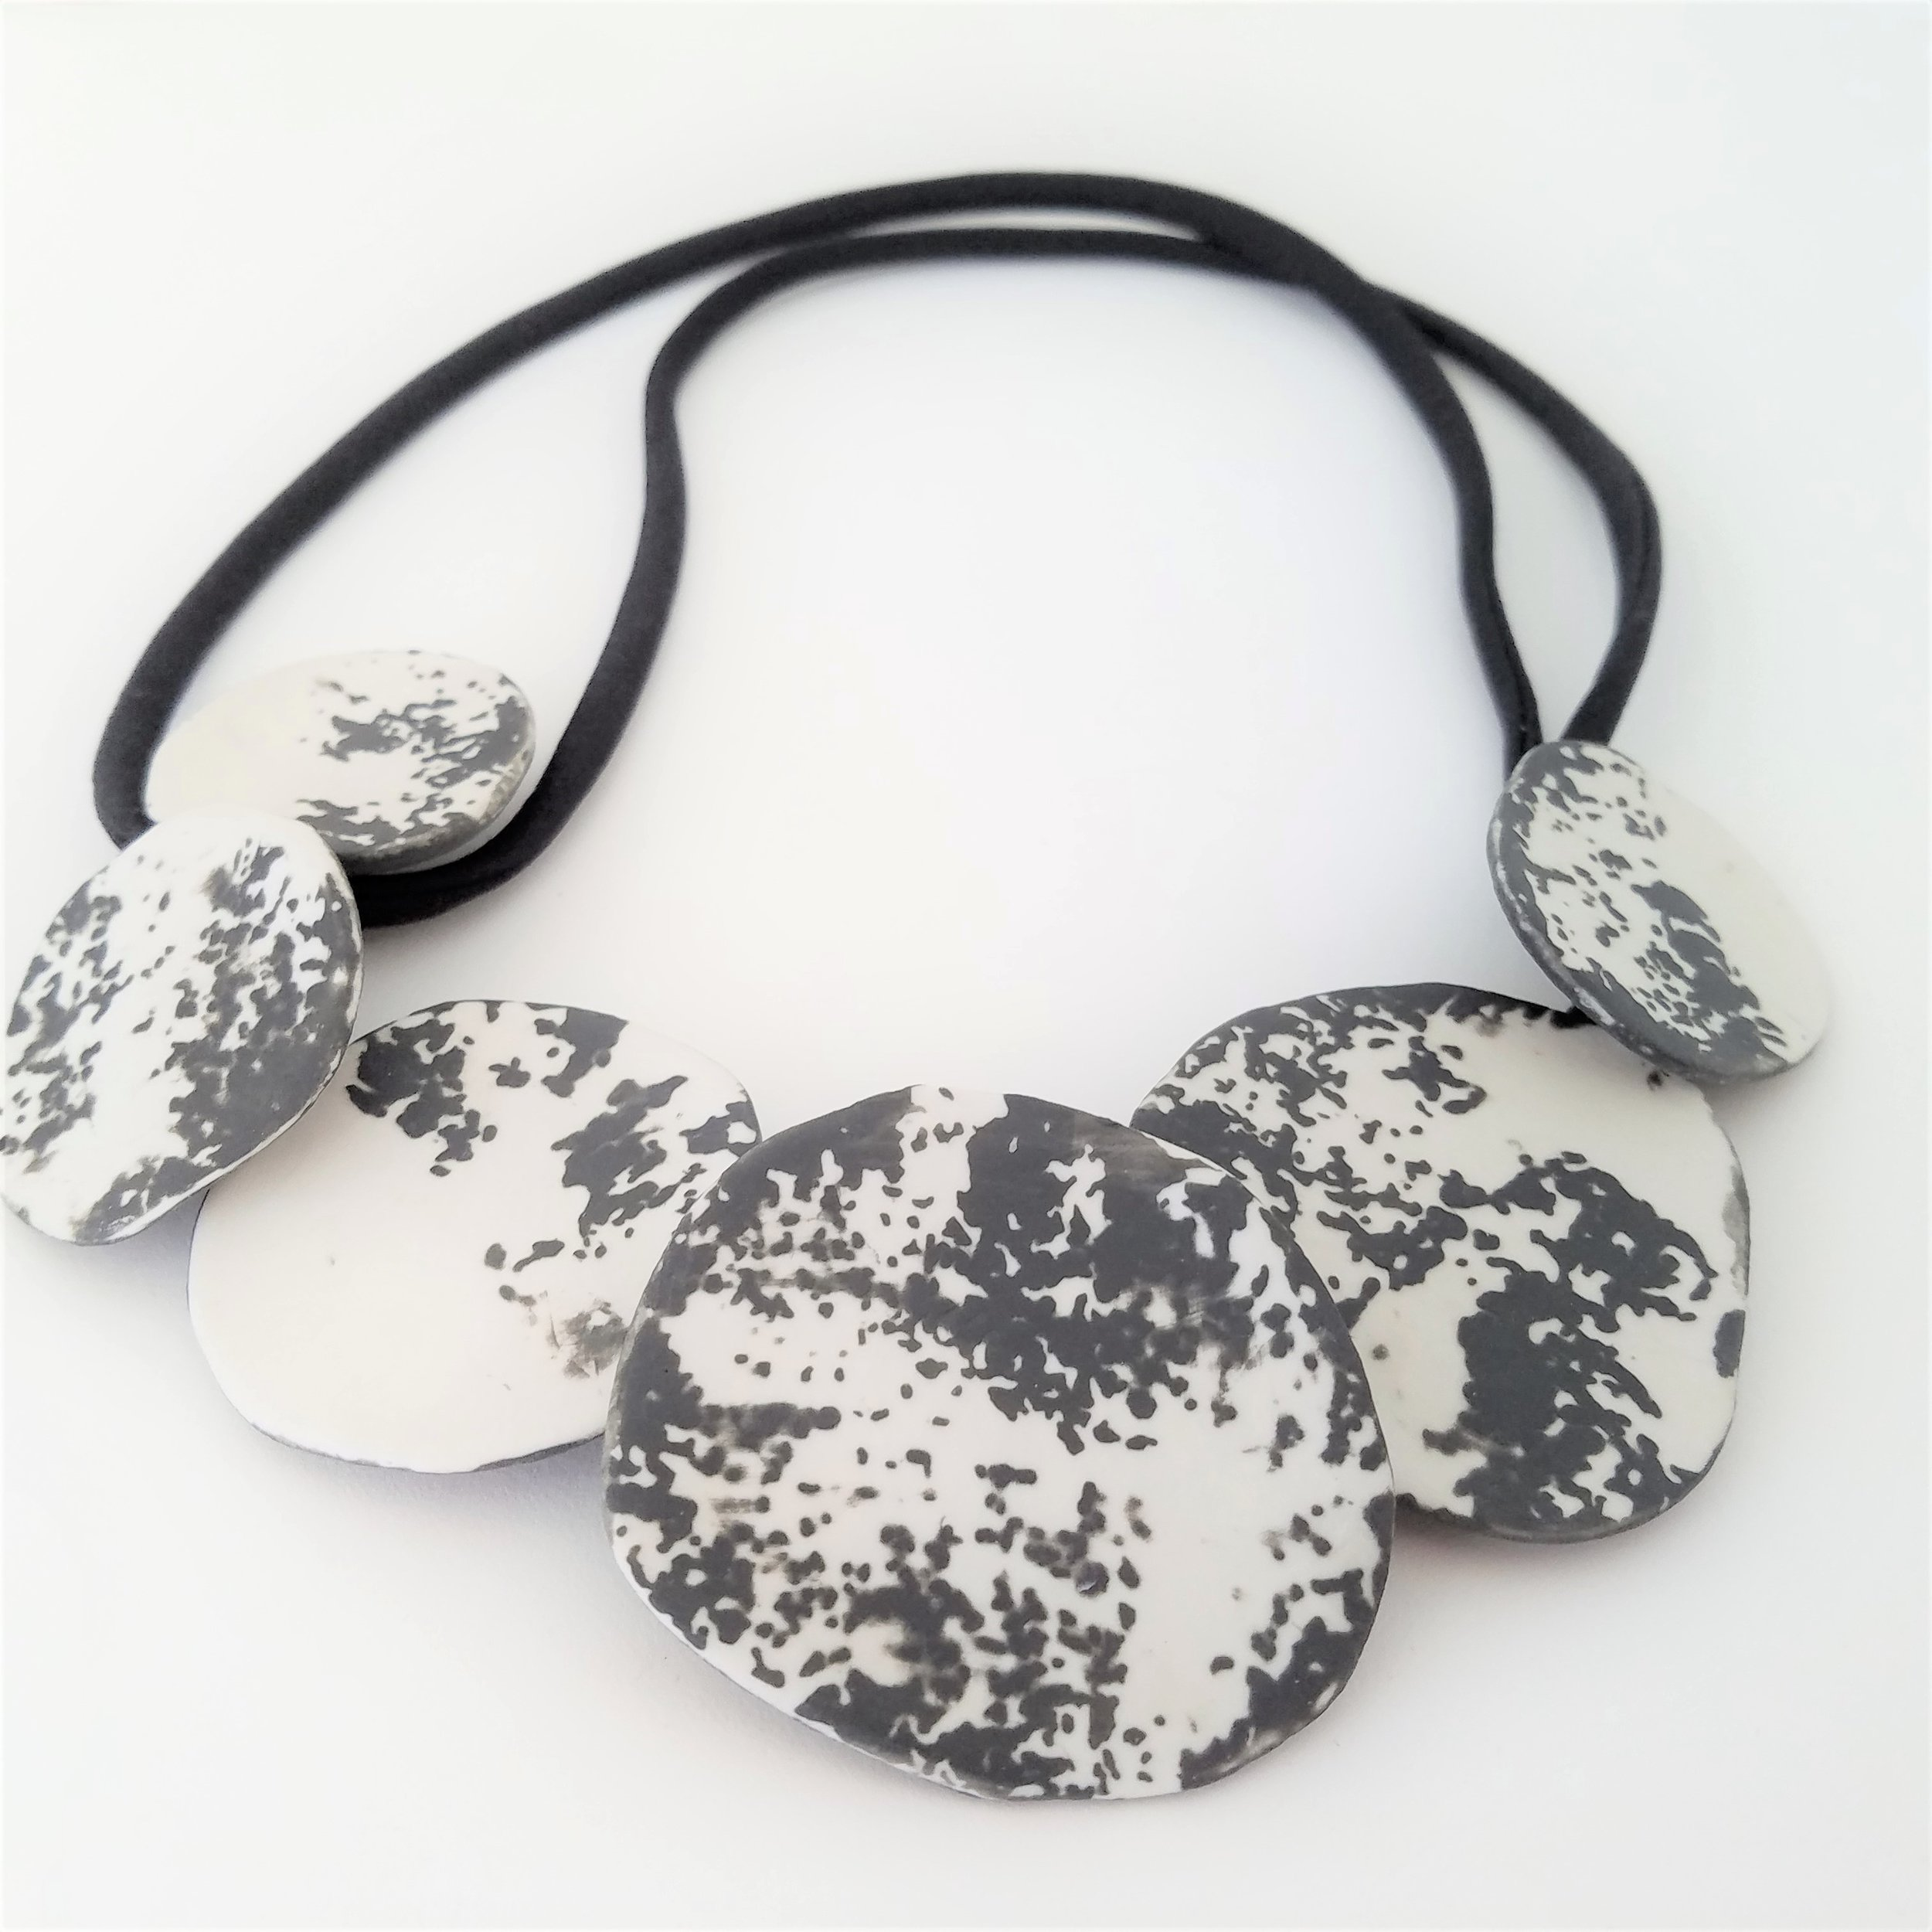 abstract ceramic cluster necklace (2).jpg